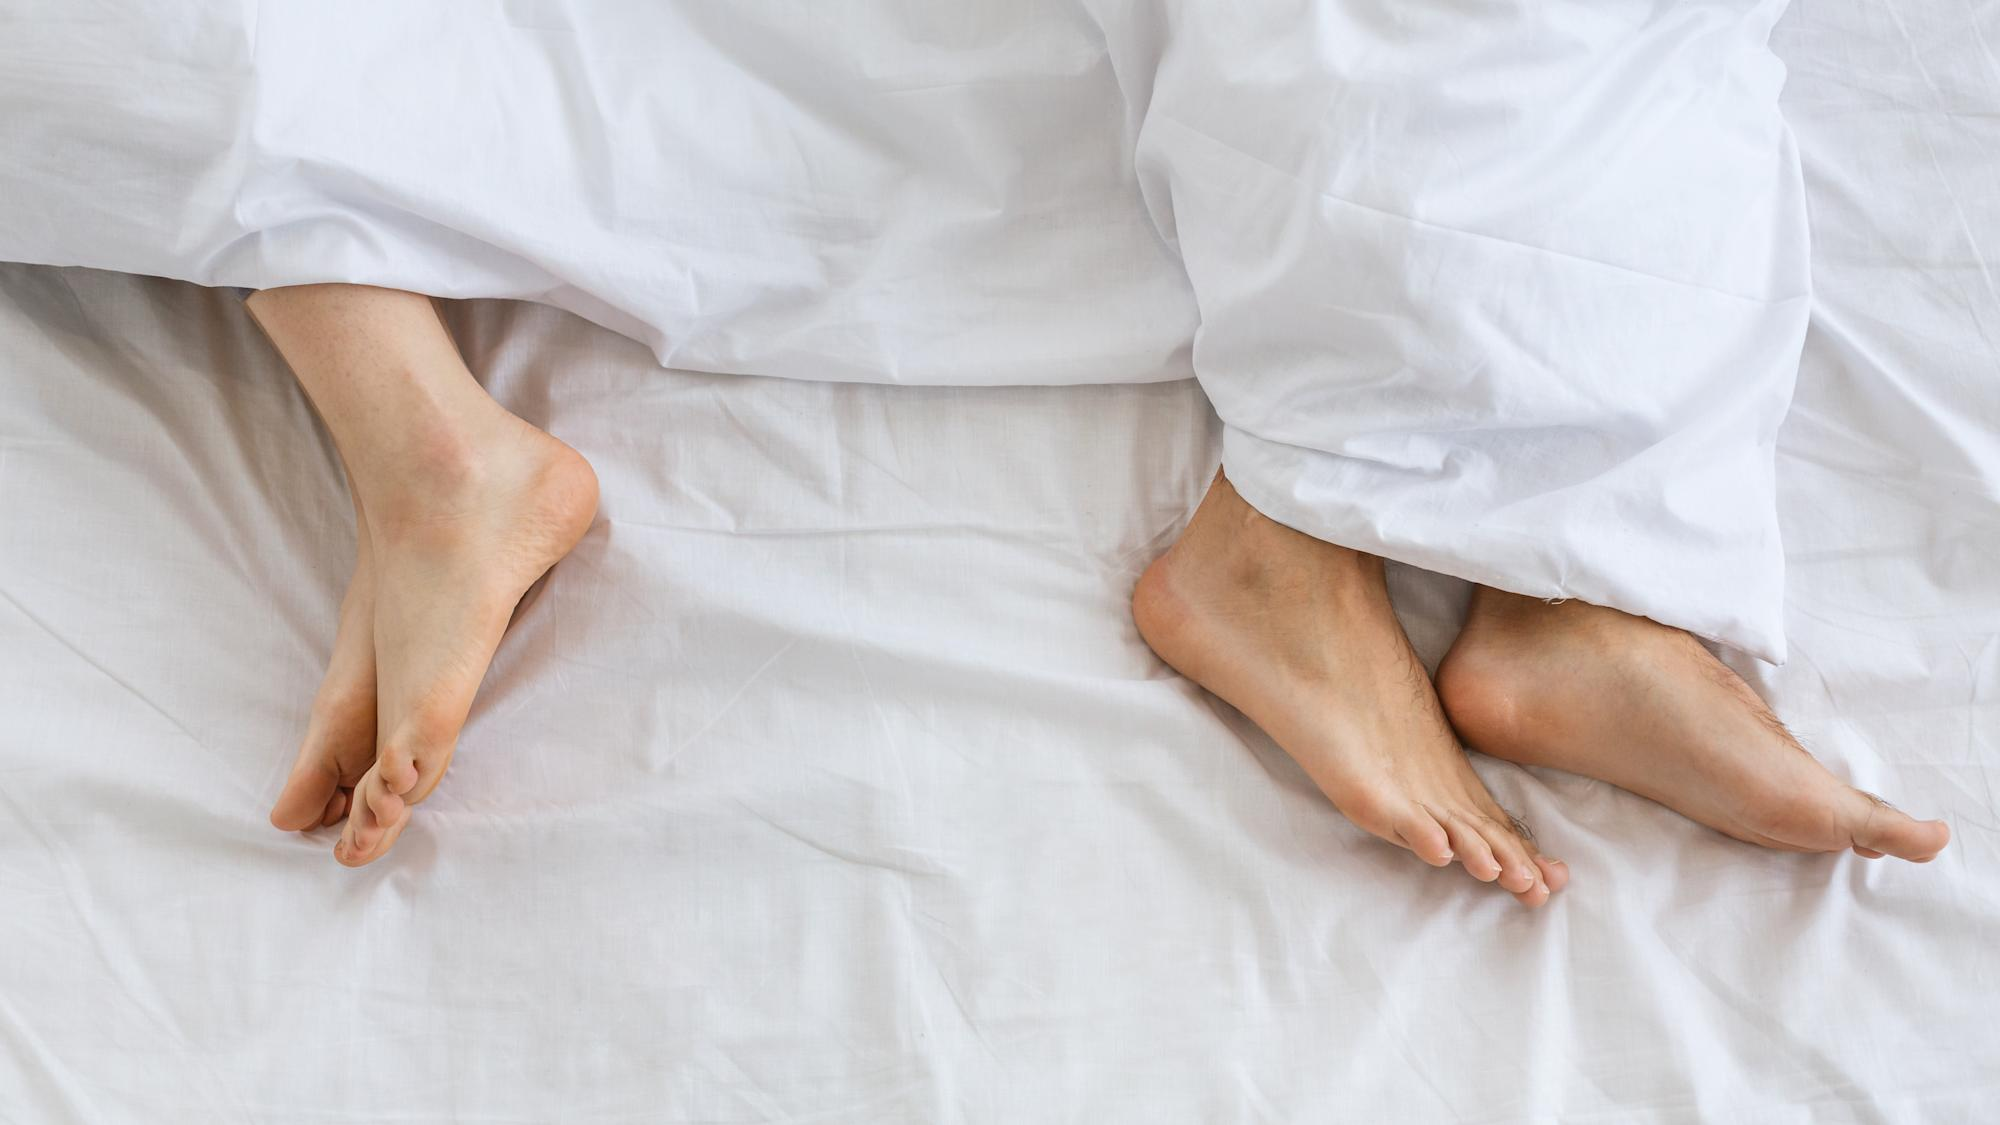 Nearly a third of men ejaculate prematurely - and help is available